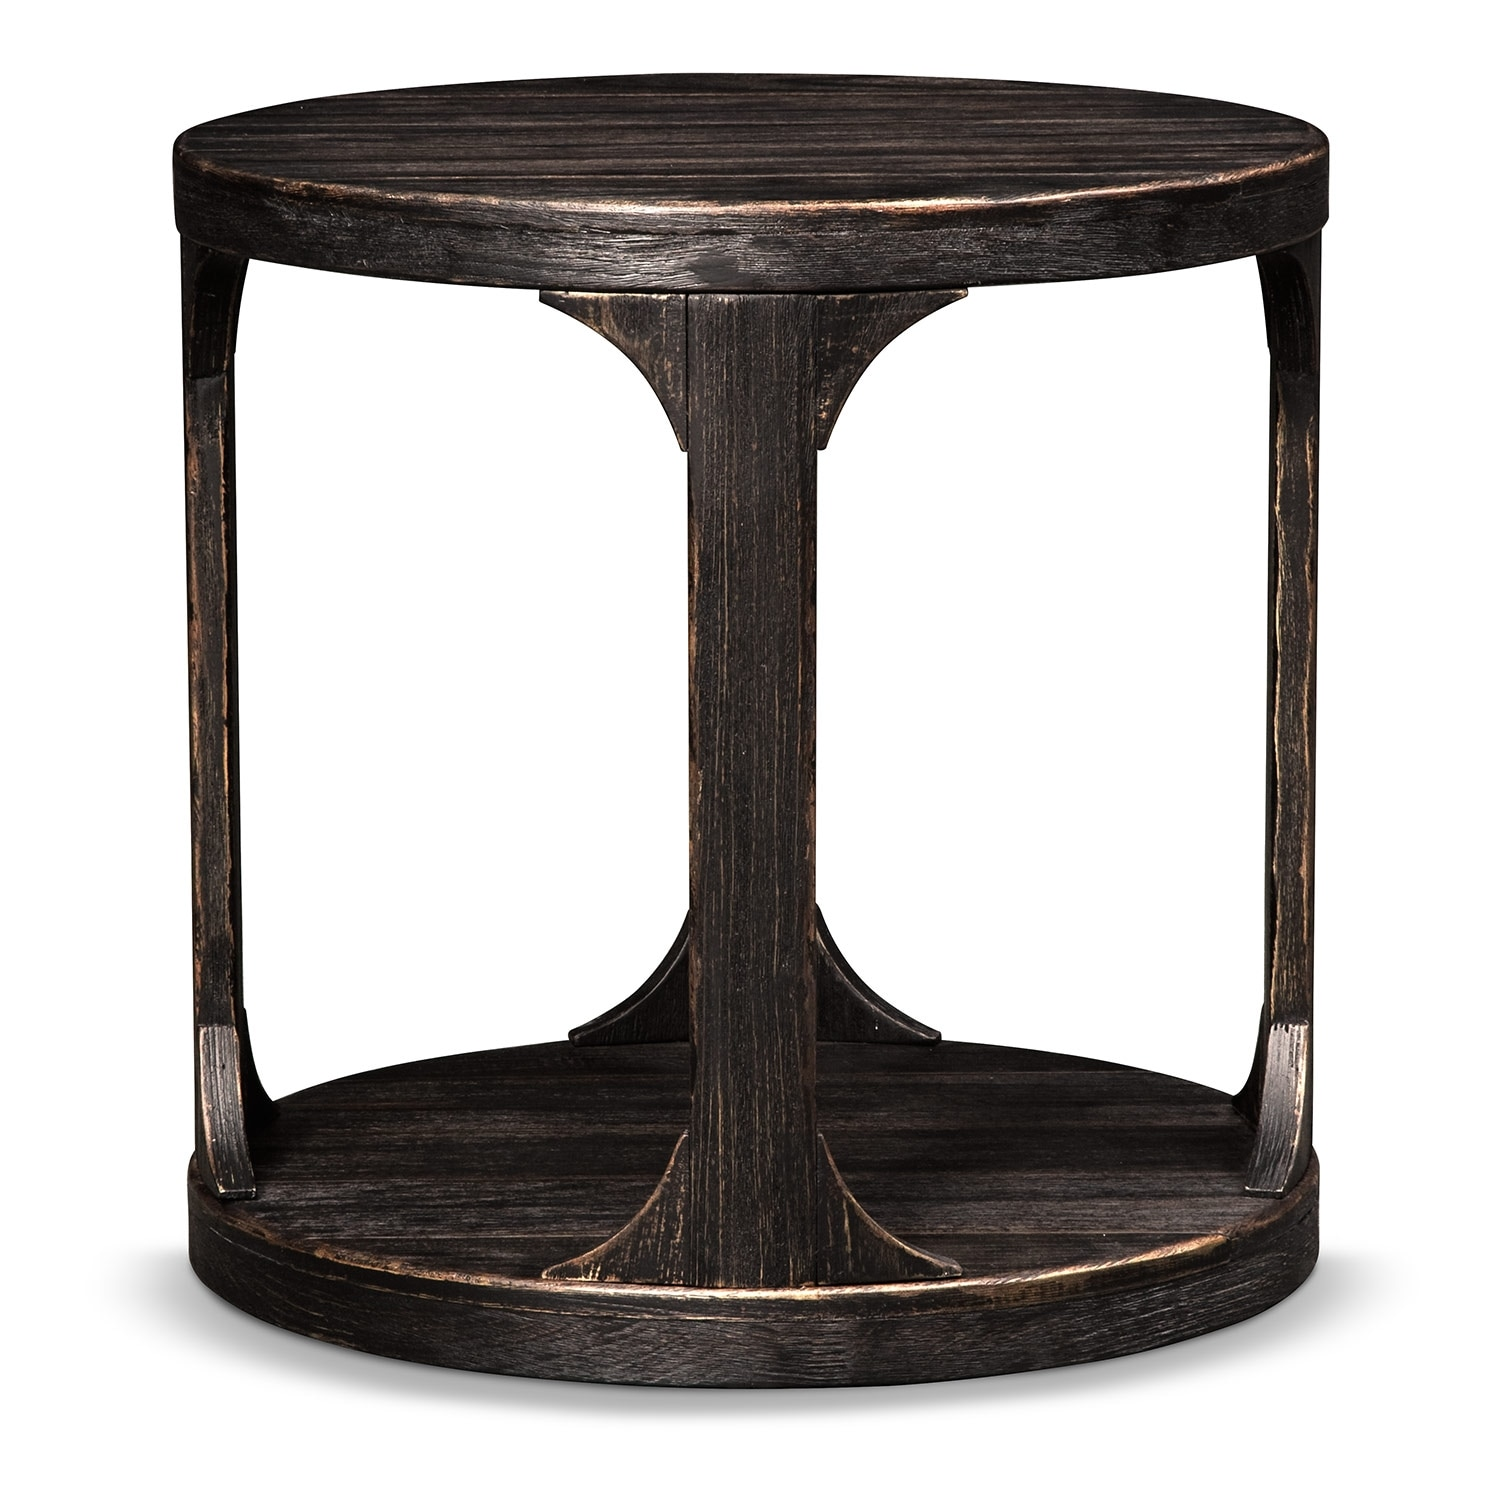 Prentice round end table weathered black value city for Black round end table